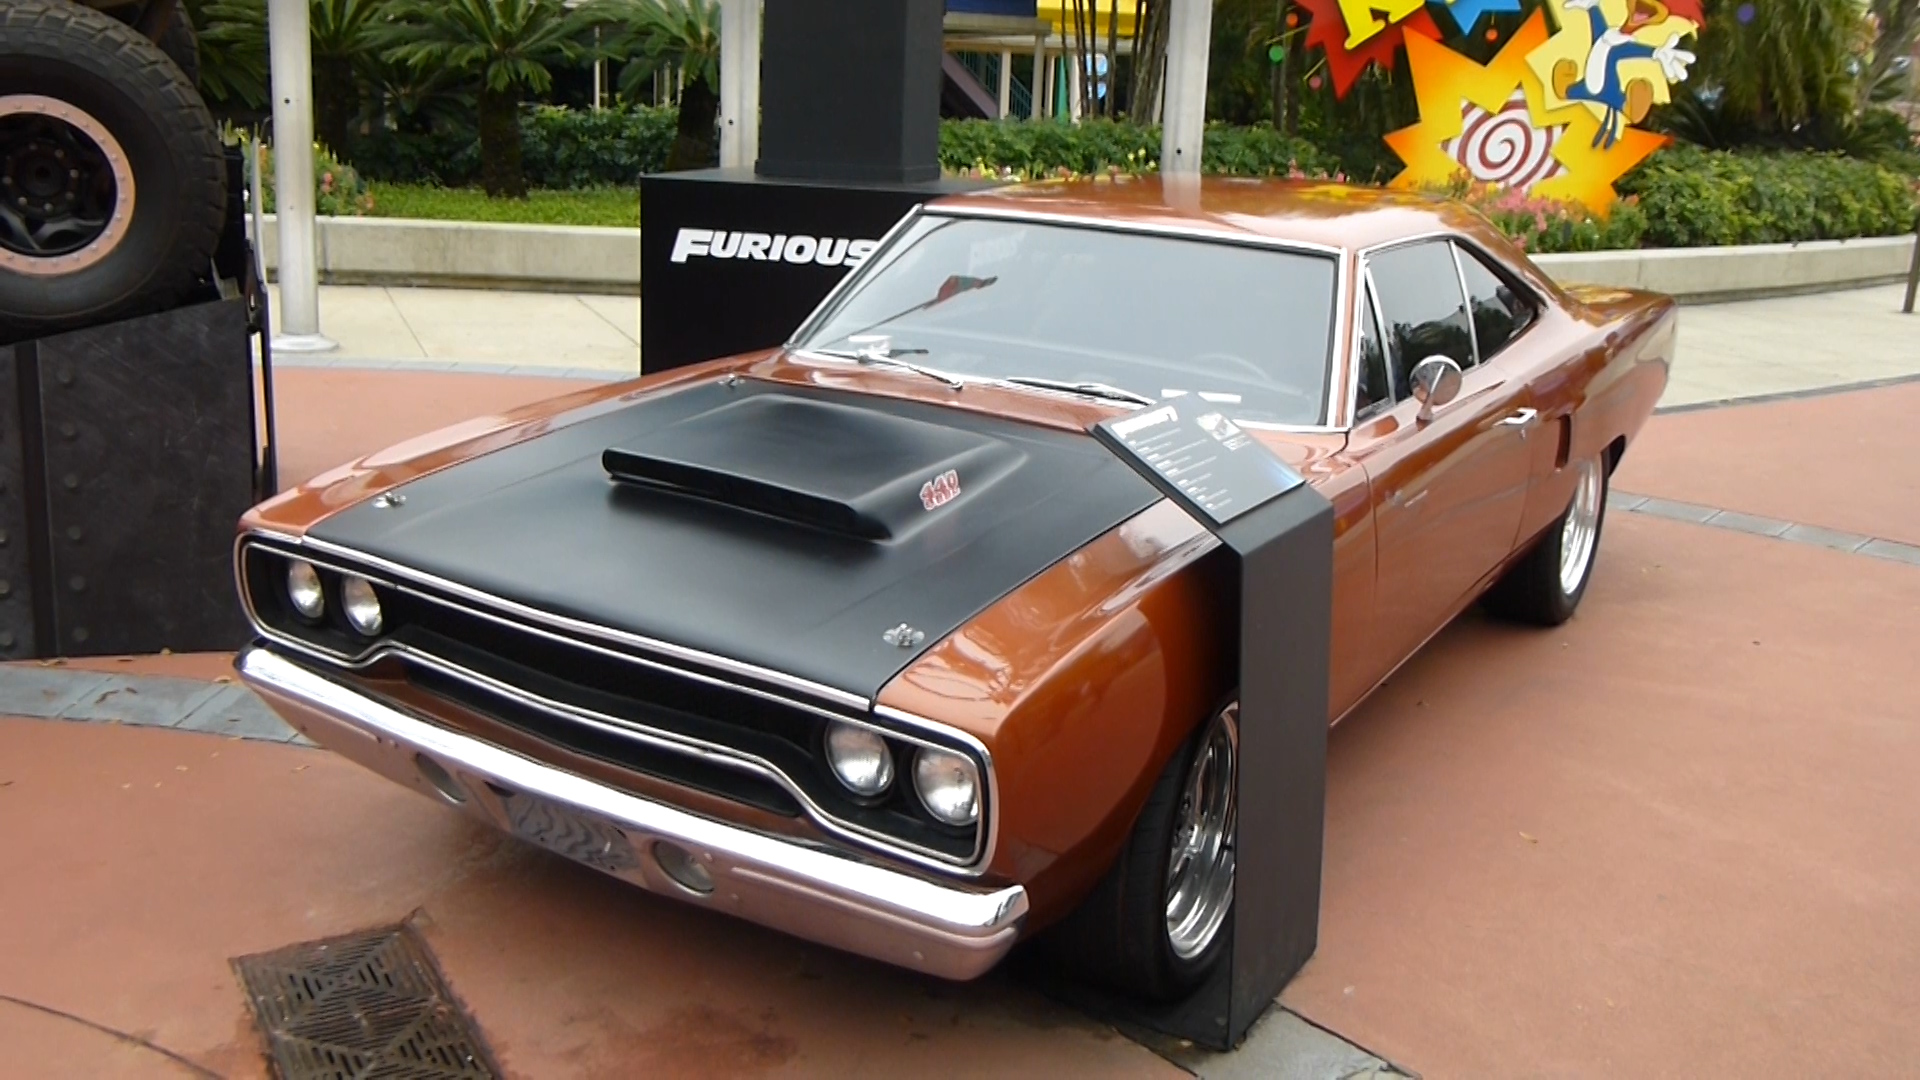 Used Cars Florida >> Furious 7 Screen Used Cars On Display At Universal Studios